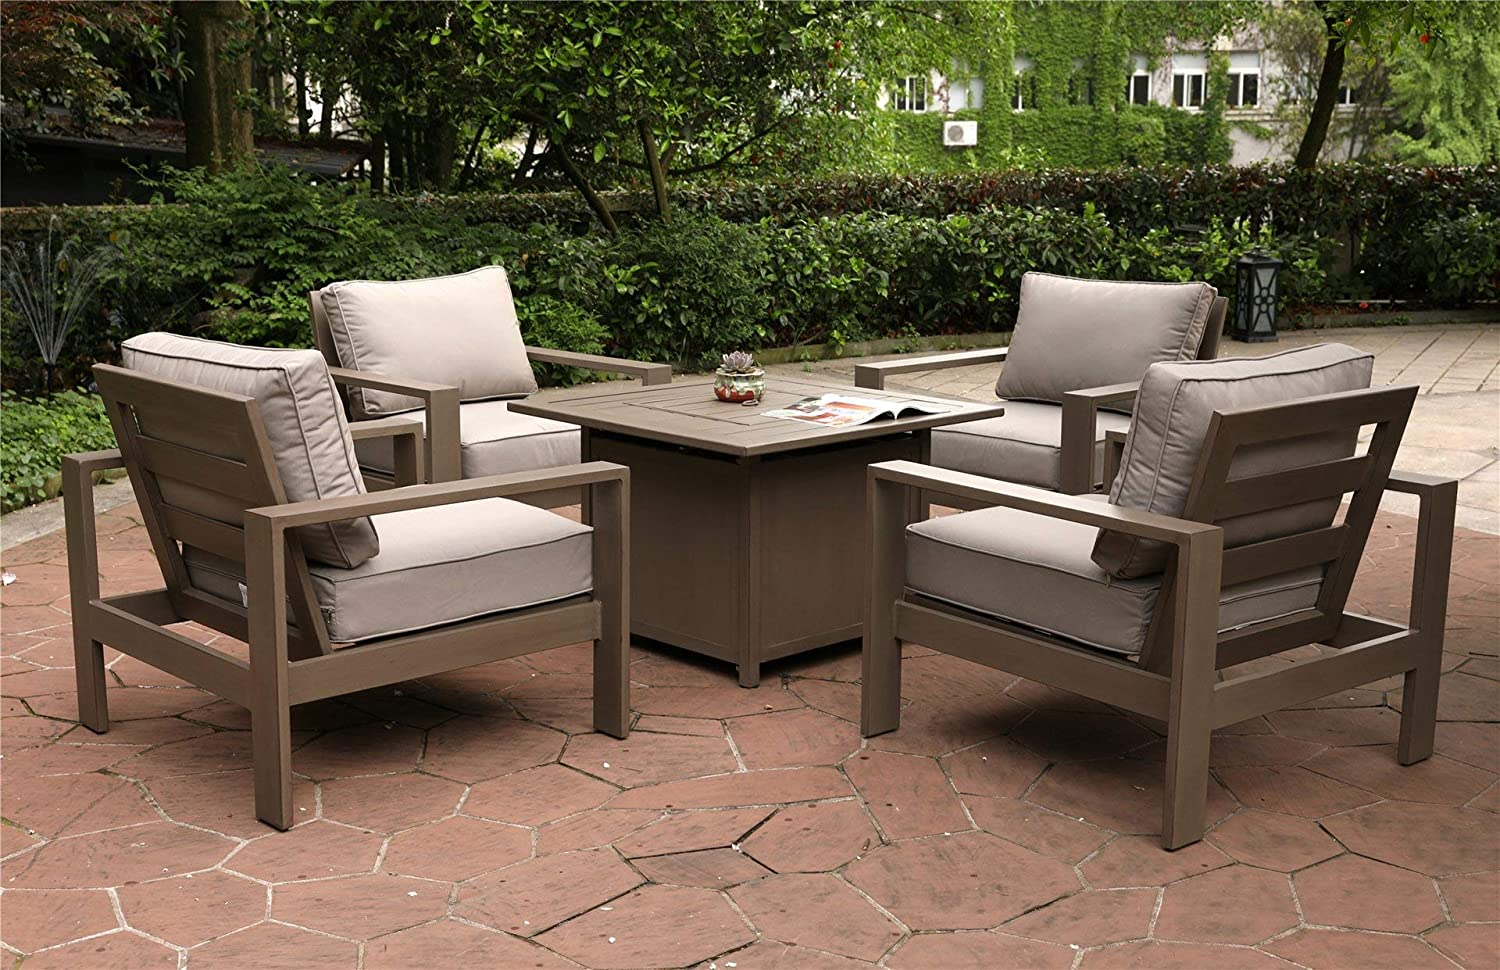 Amazon com marativa 5 piece fire pit set 4 club chairs square chat high gas fire pit table garden outdoor